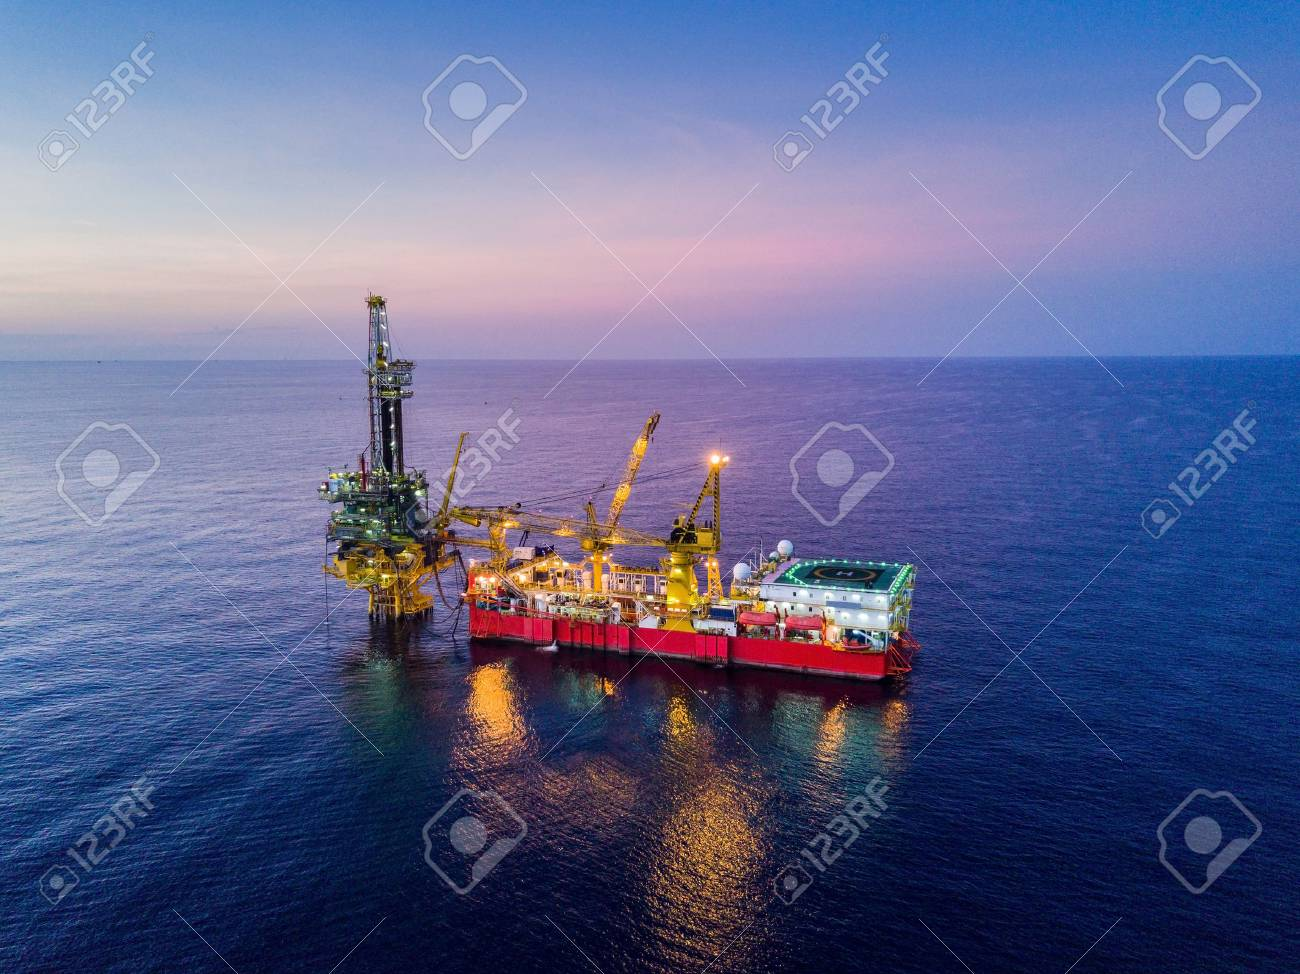 Aerial View of Tender Drilling Oil Rig (Barge Oil Rig) in The Middle of The Ocean at Surise Time - 87397793